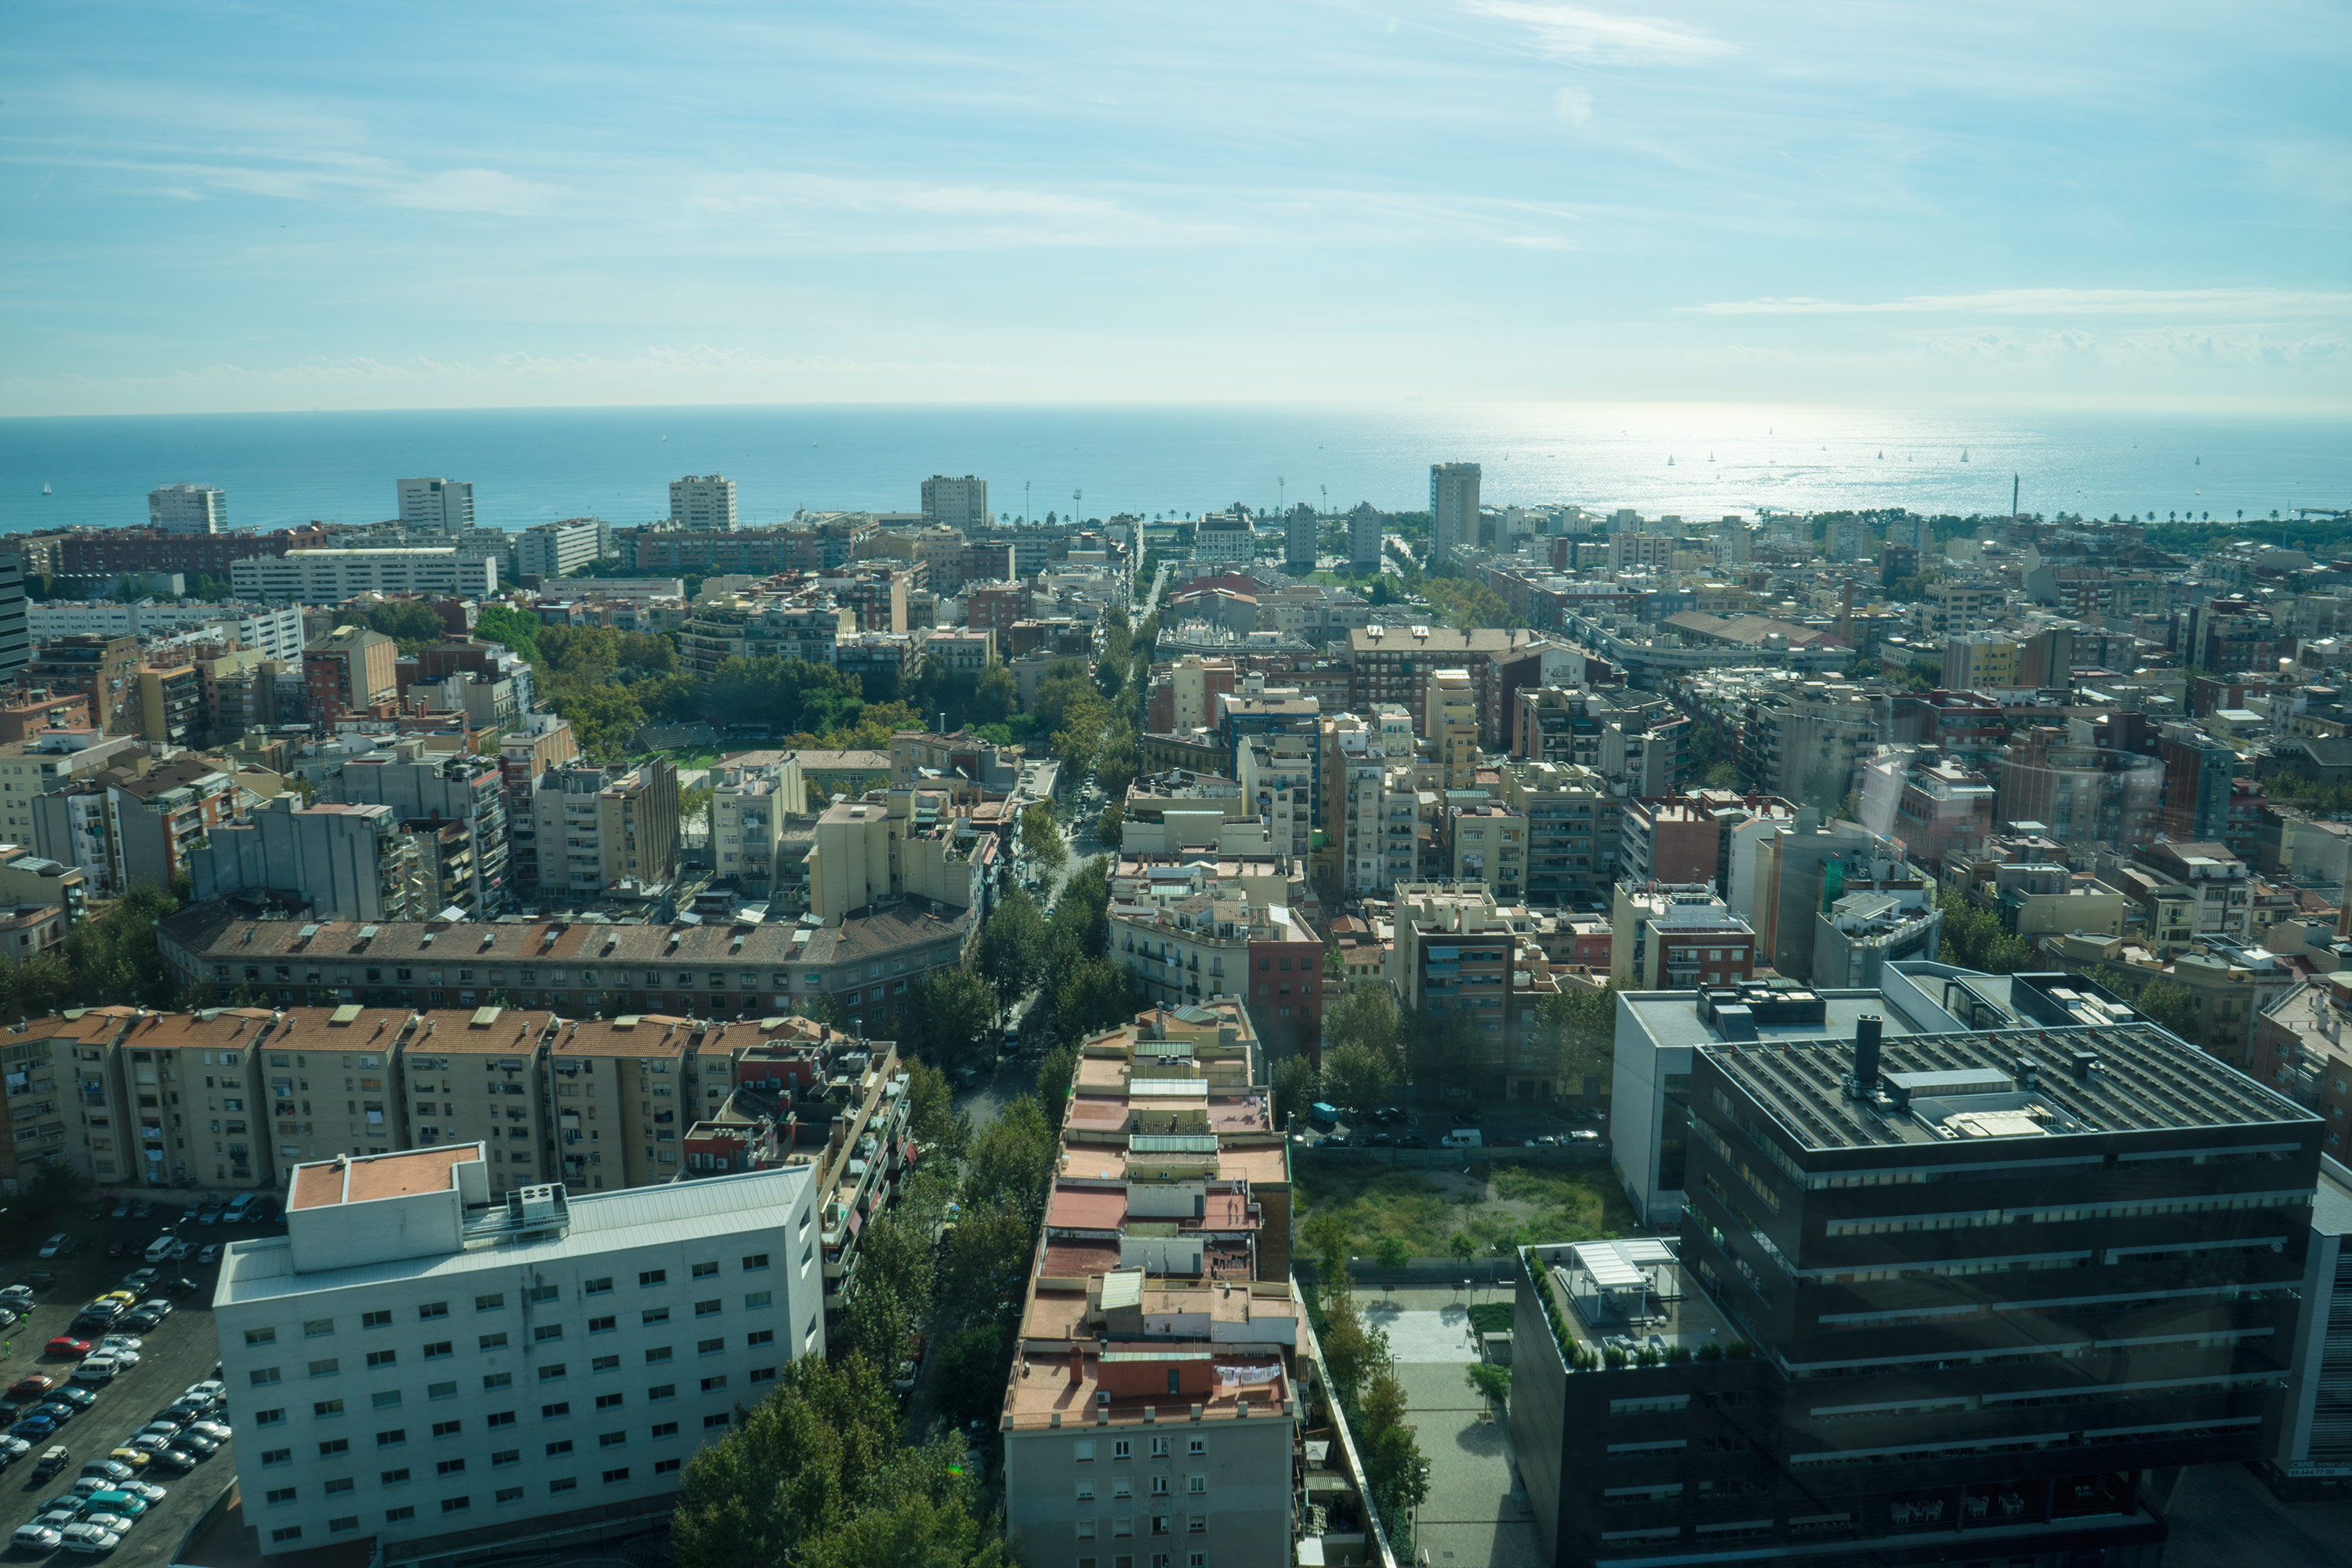 Level Melia Barcelona Sky View From The Terrace